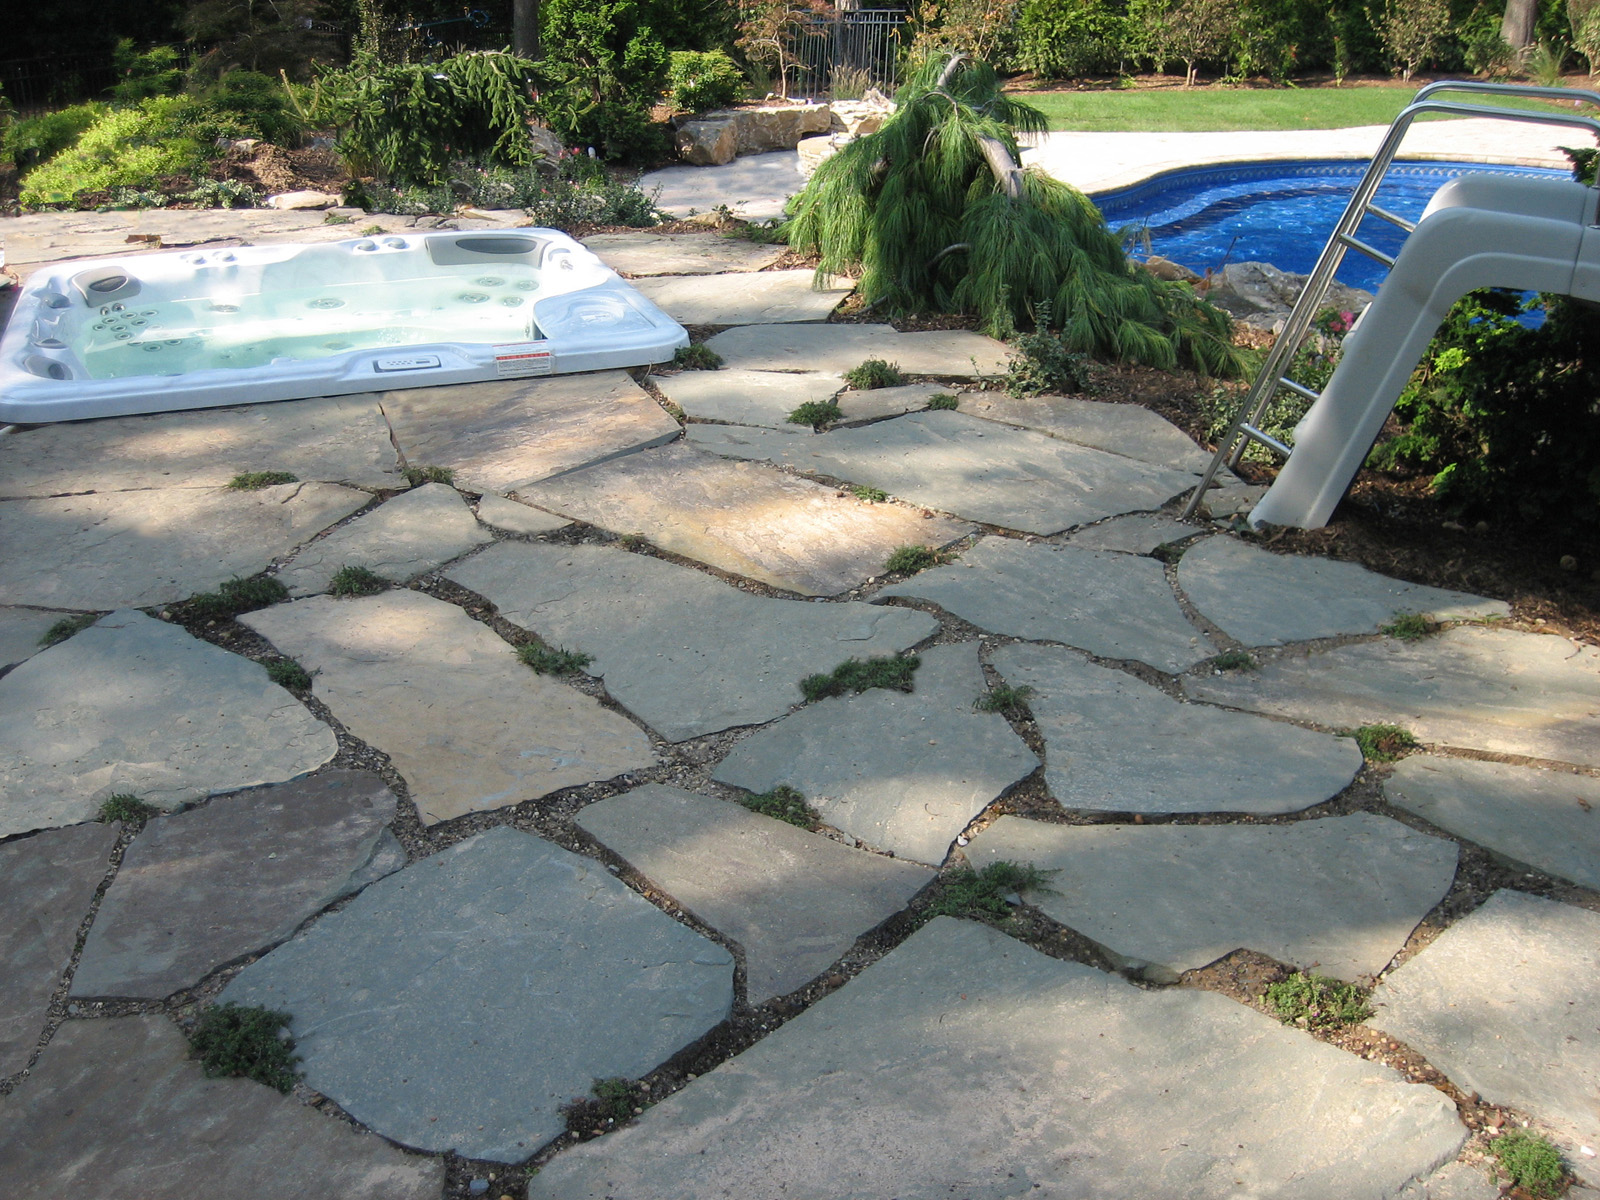 Professional landscape design company with natural stone in Long Island, NY